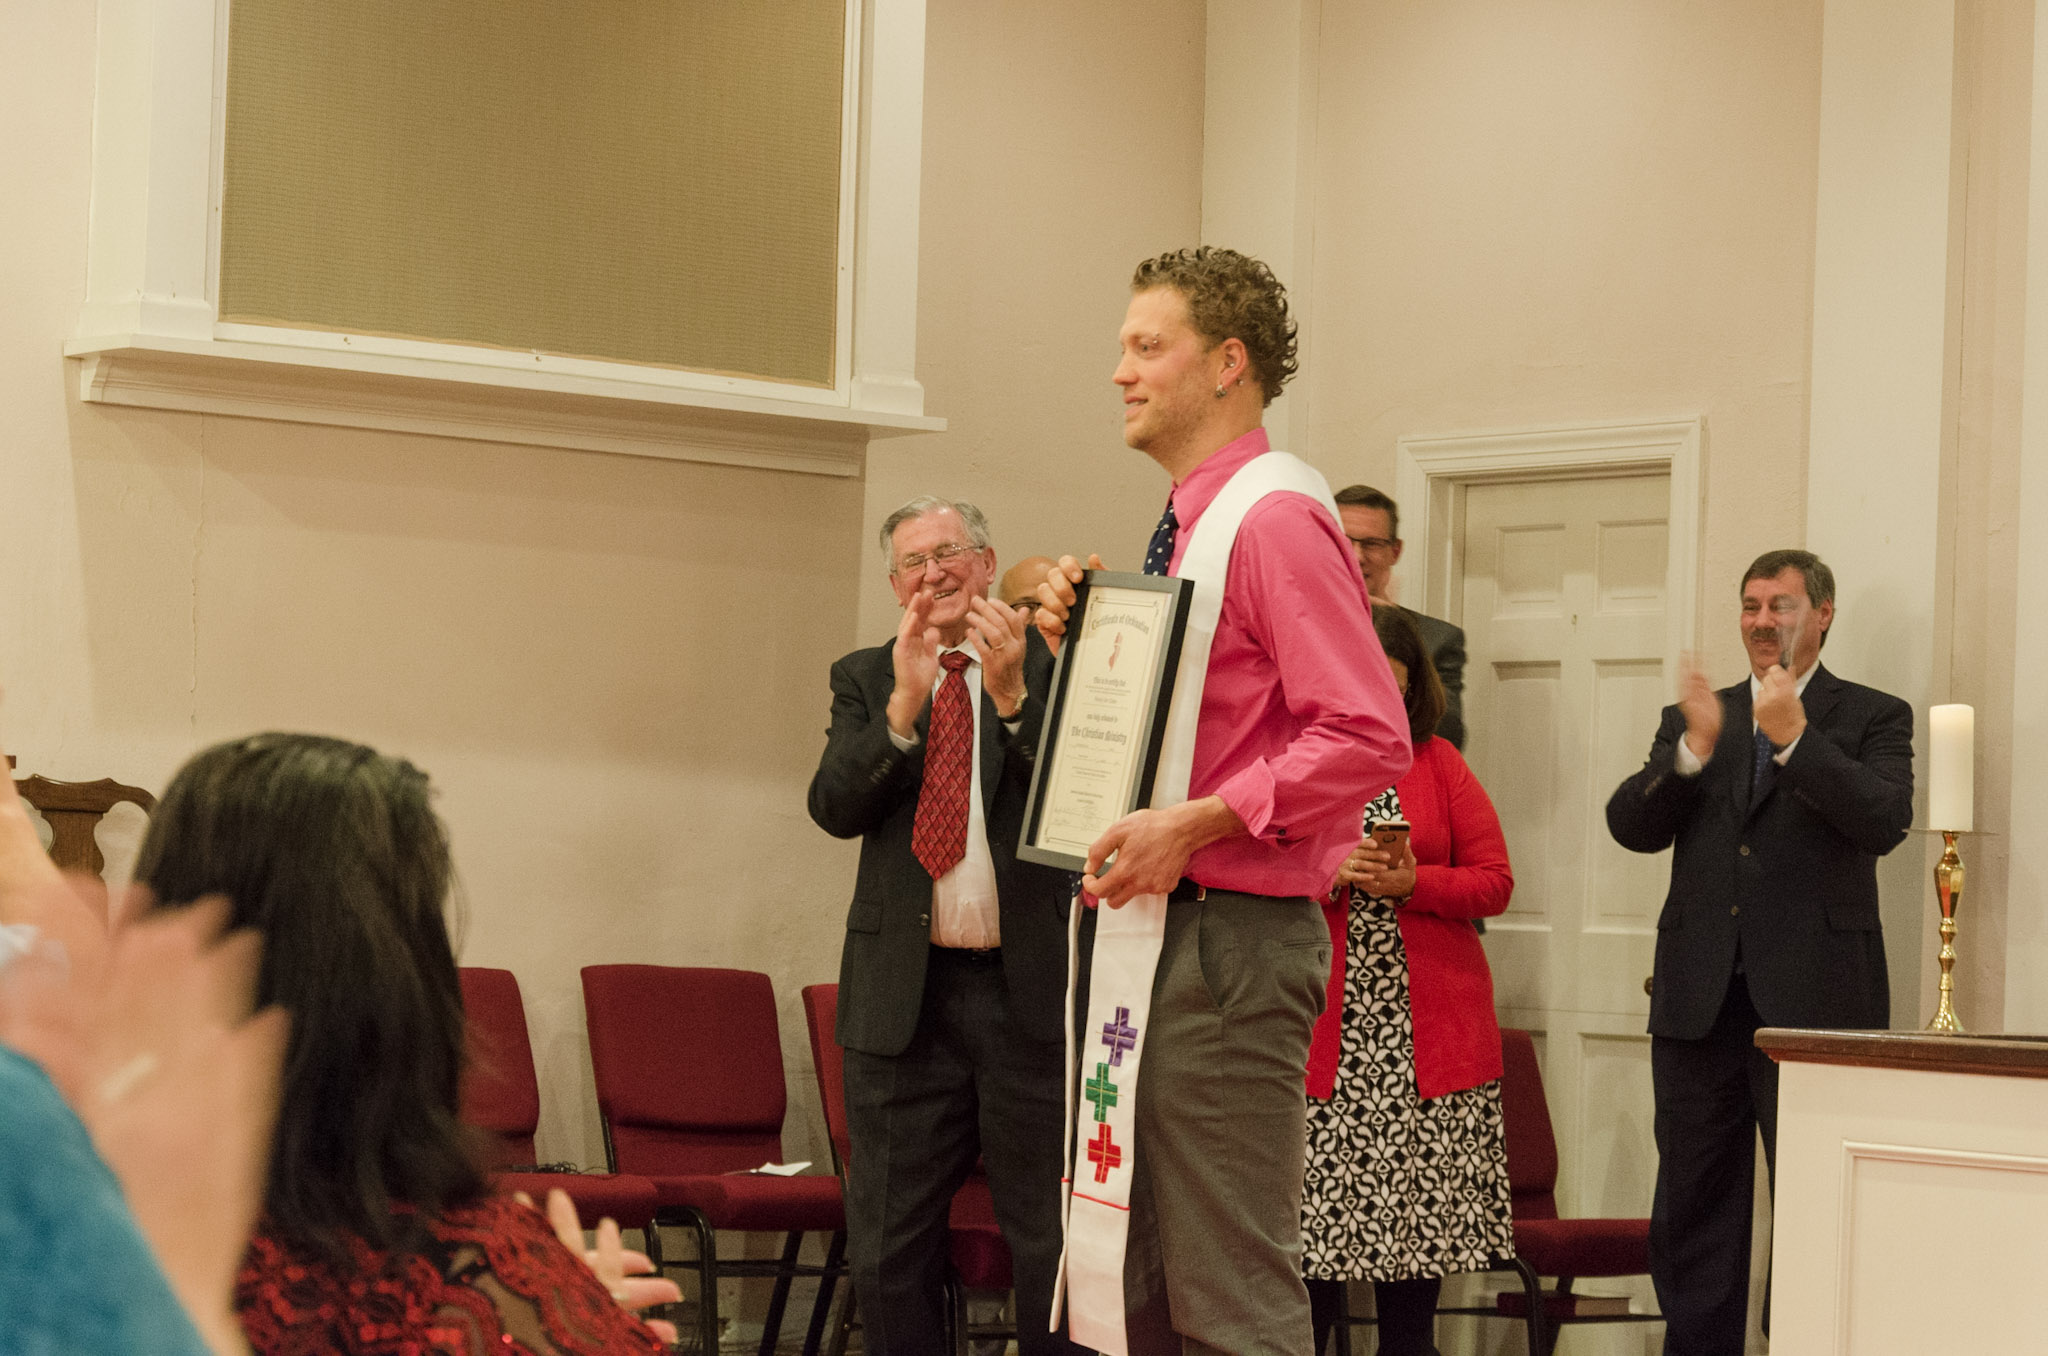 Randy receiving his ordination certificate